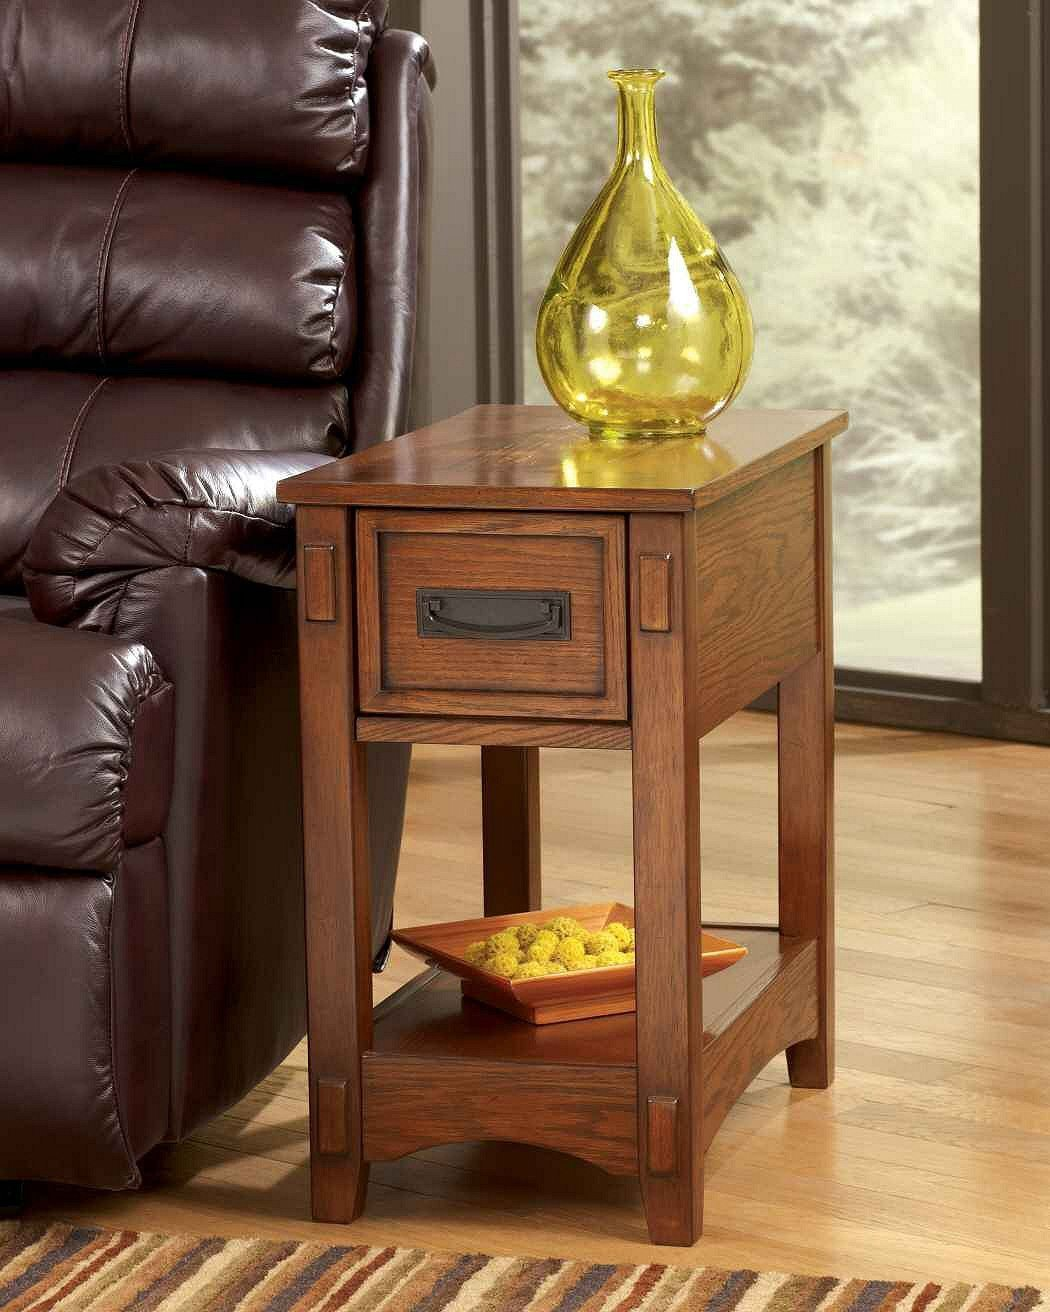 manufactured end table